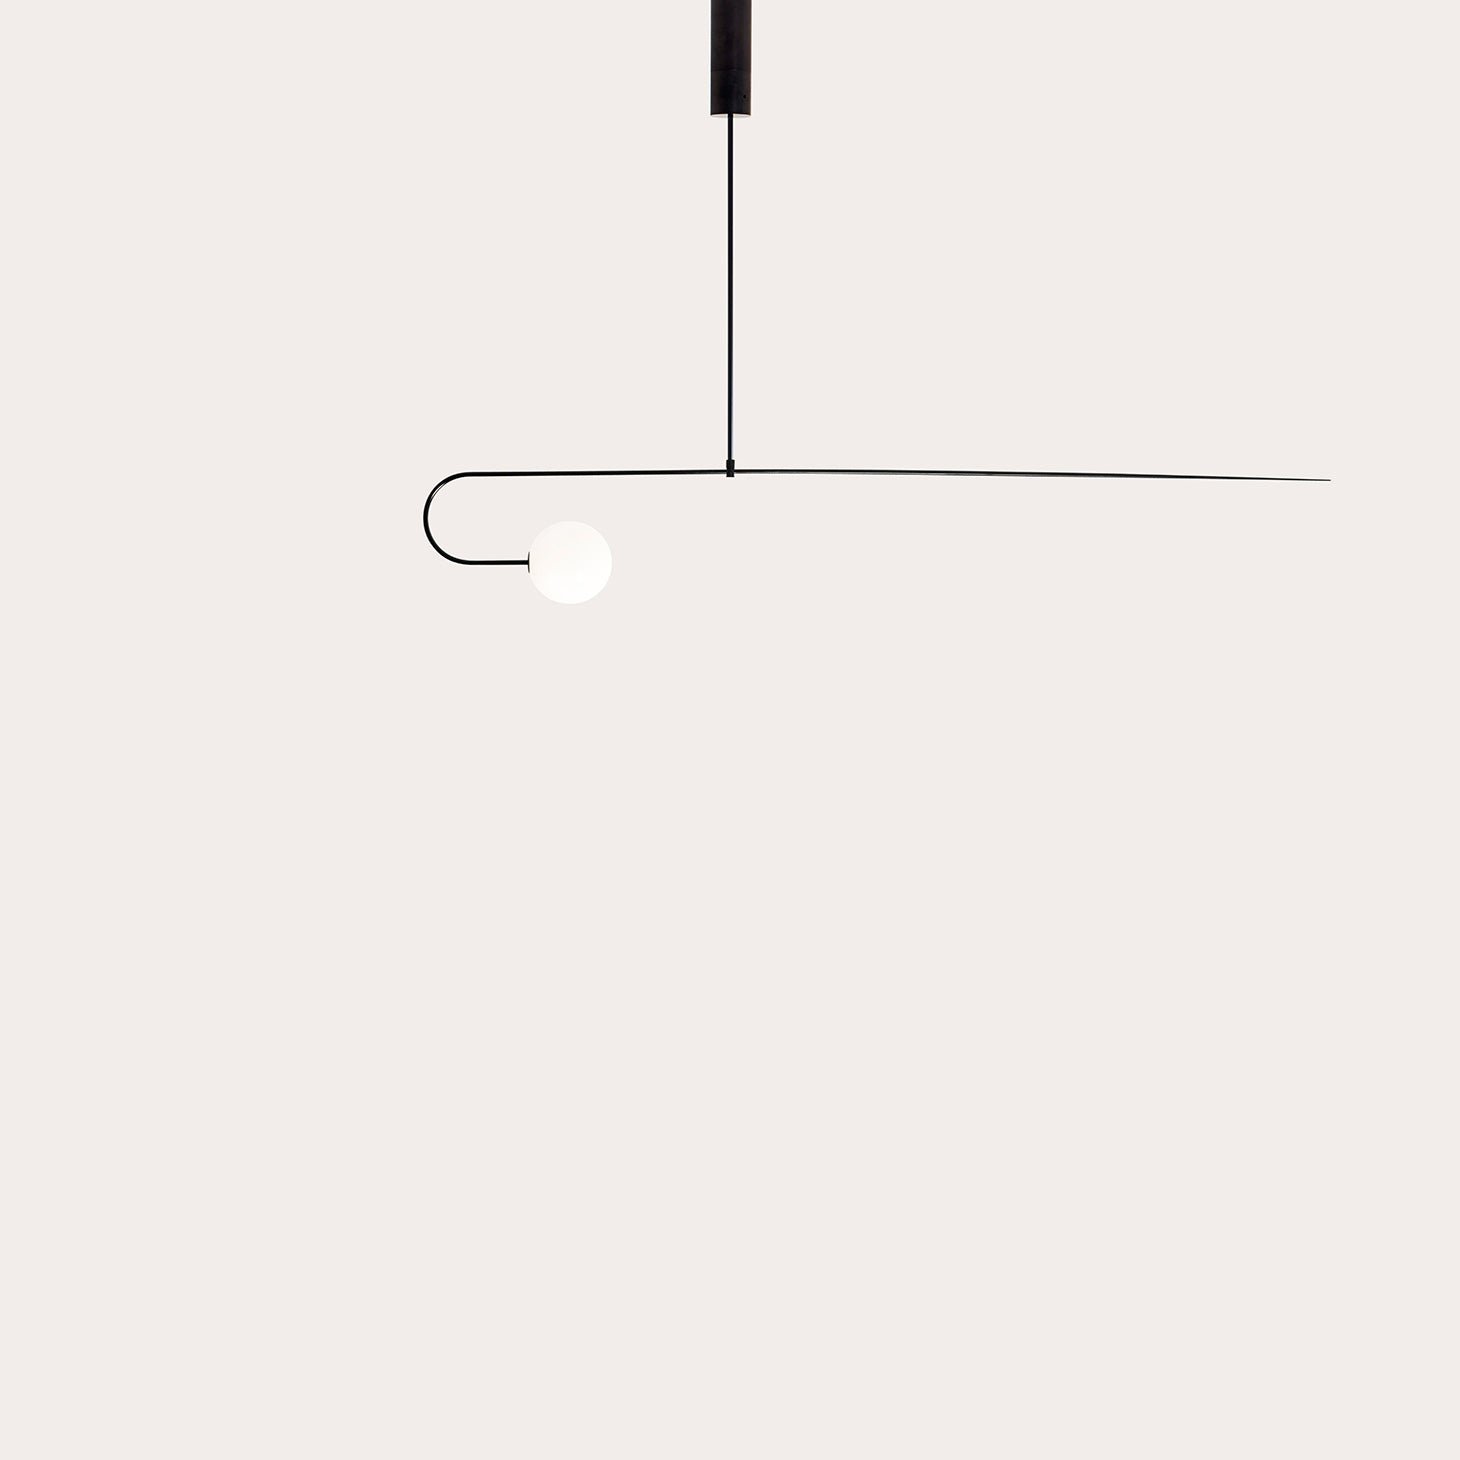 Mobile Chandelier 8 Lighting Michael Anastassiades Designer Furniture Sku: 717-160-10035